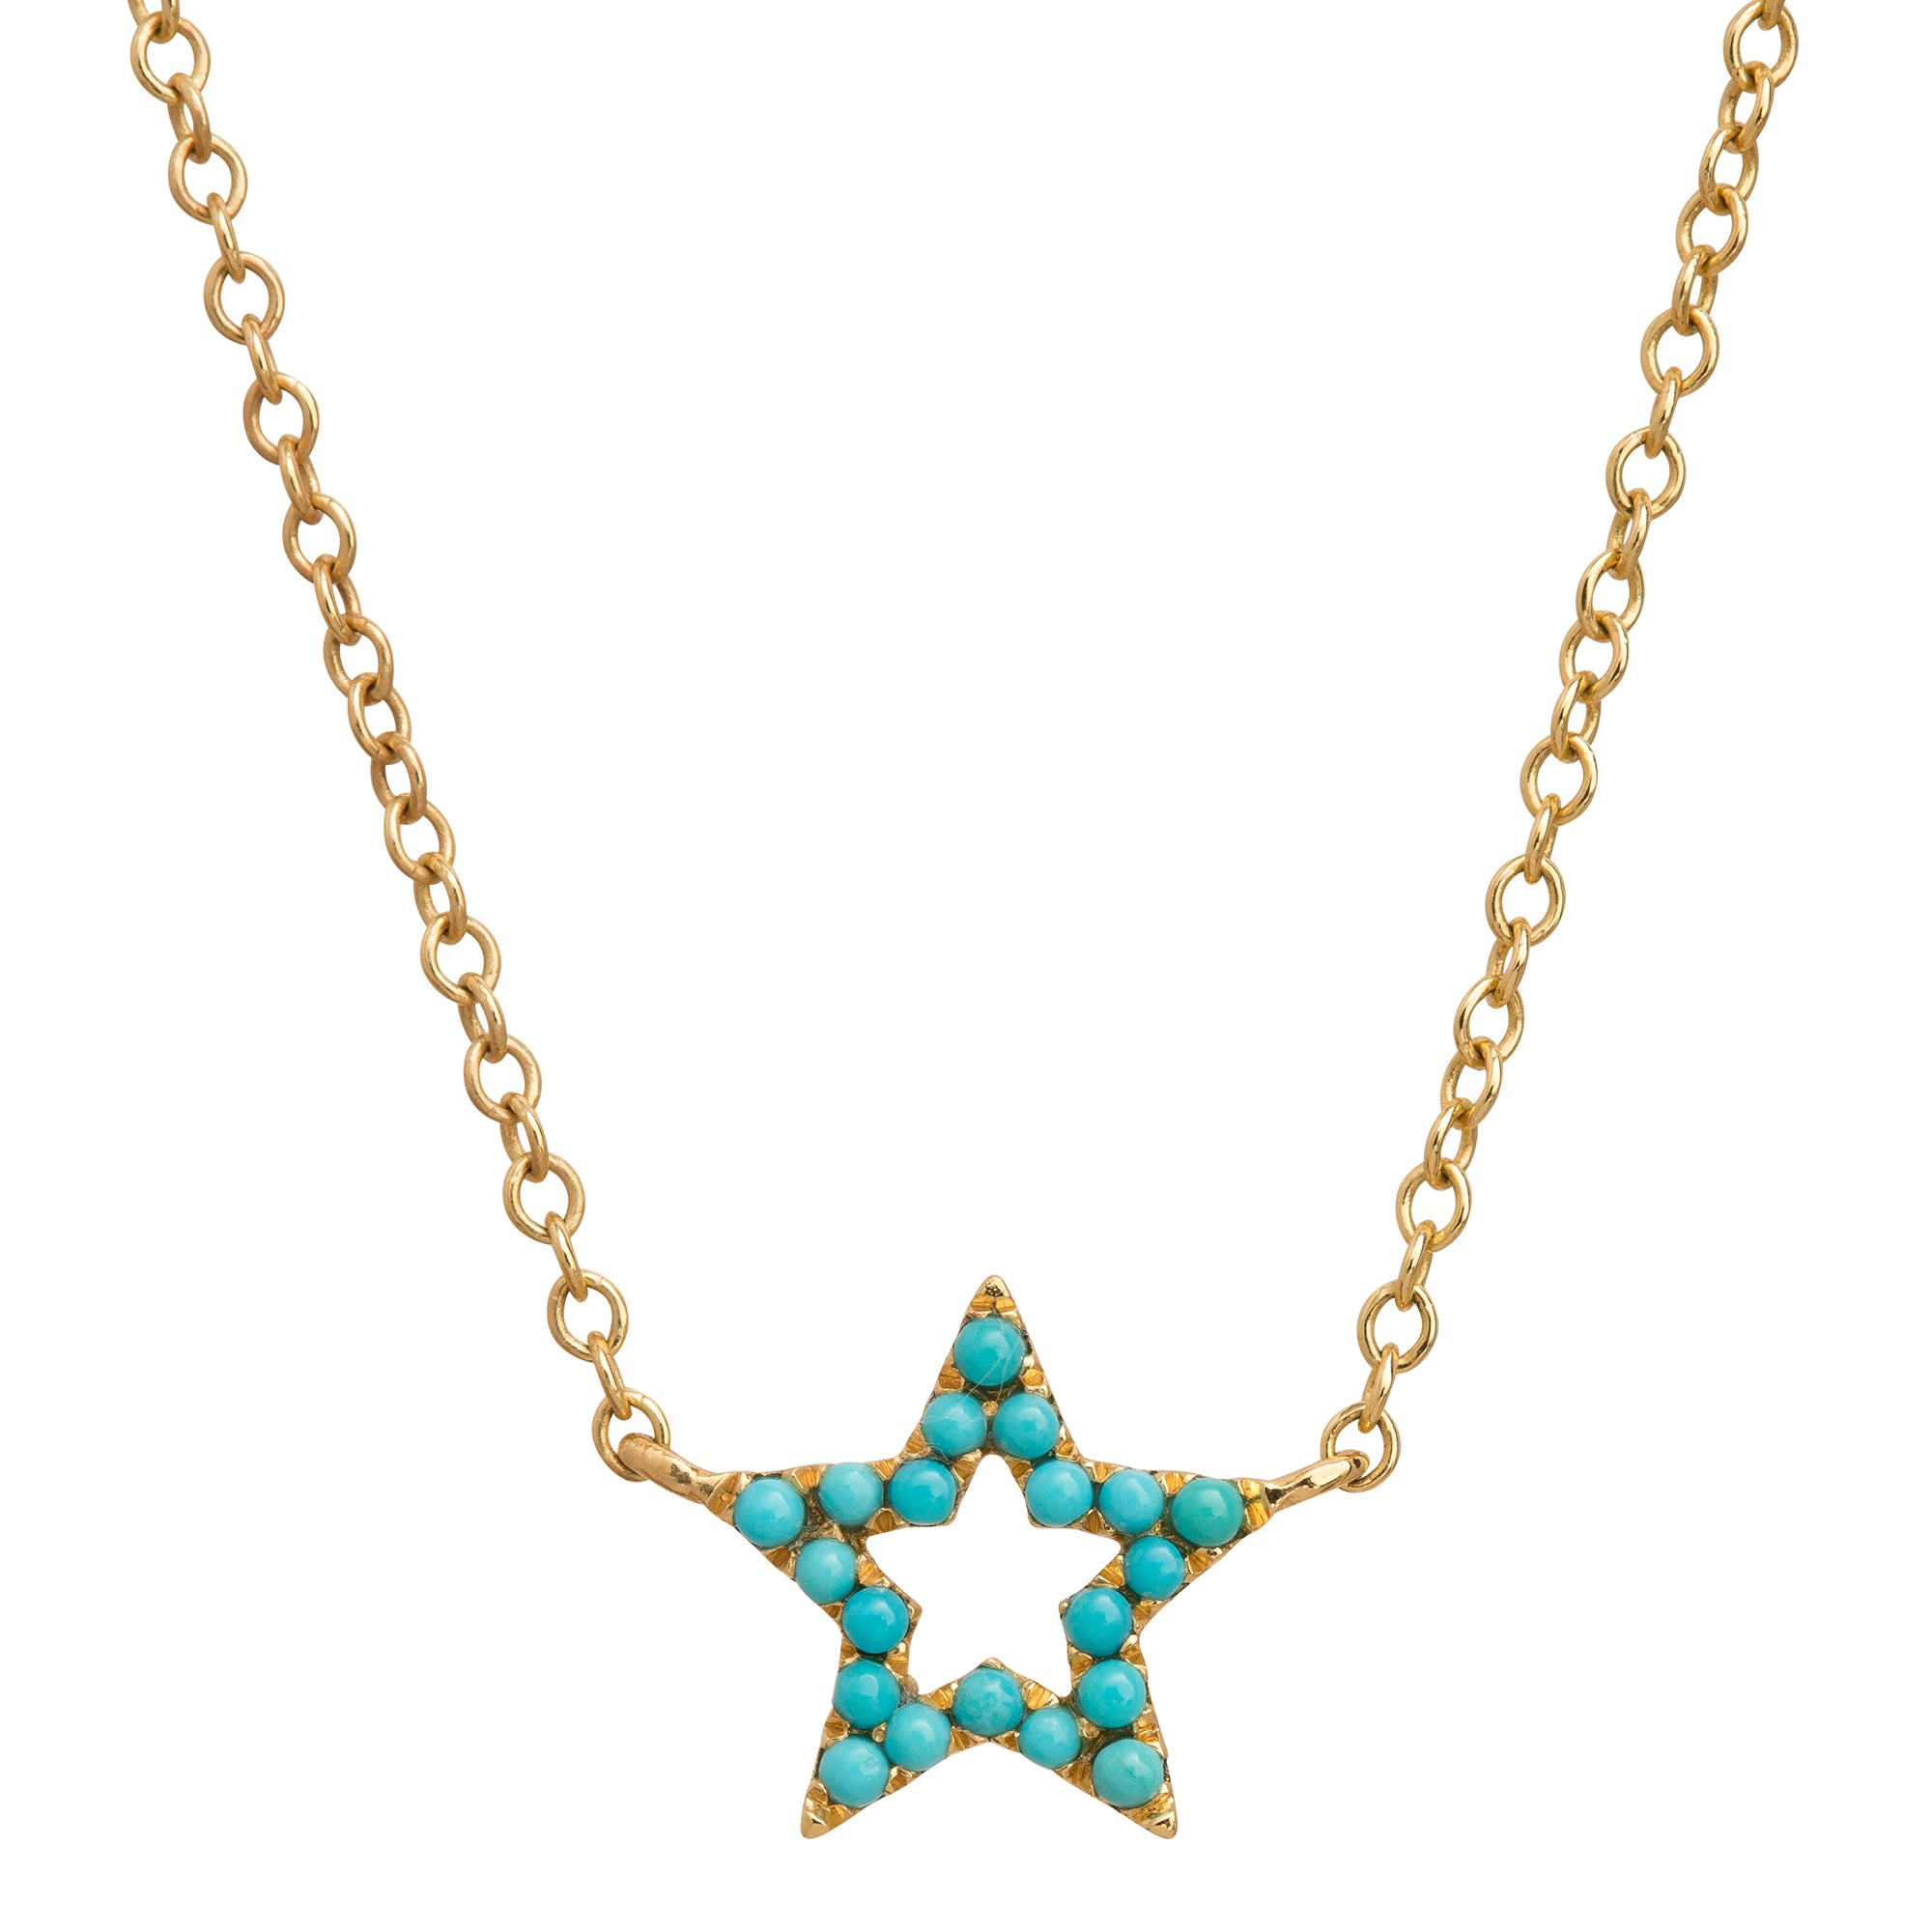 Turquoise Star Charm Necklace by Rosa de la Cruz for Broken English Jewelry